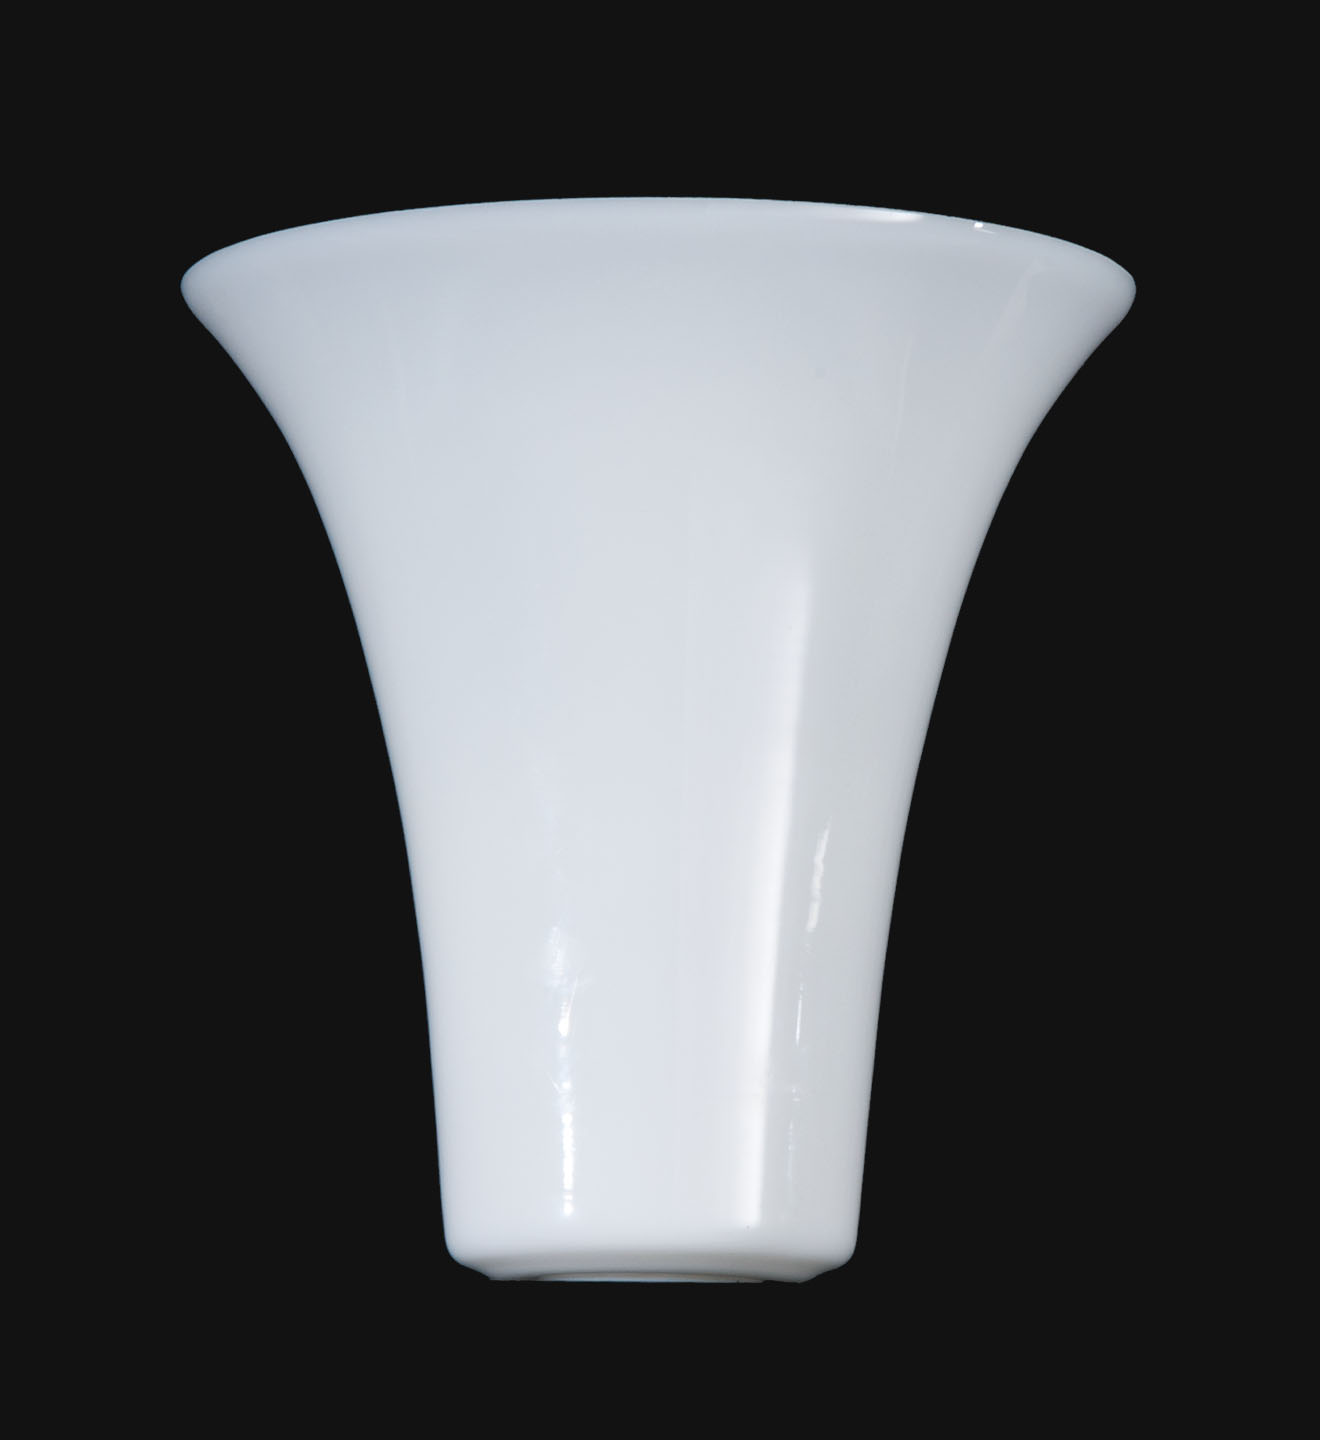 Opal Glass Tulip Shaped Torchiere Shade 09090 B Amp P Lamp Supply